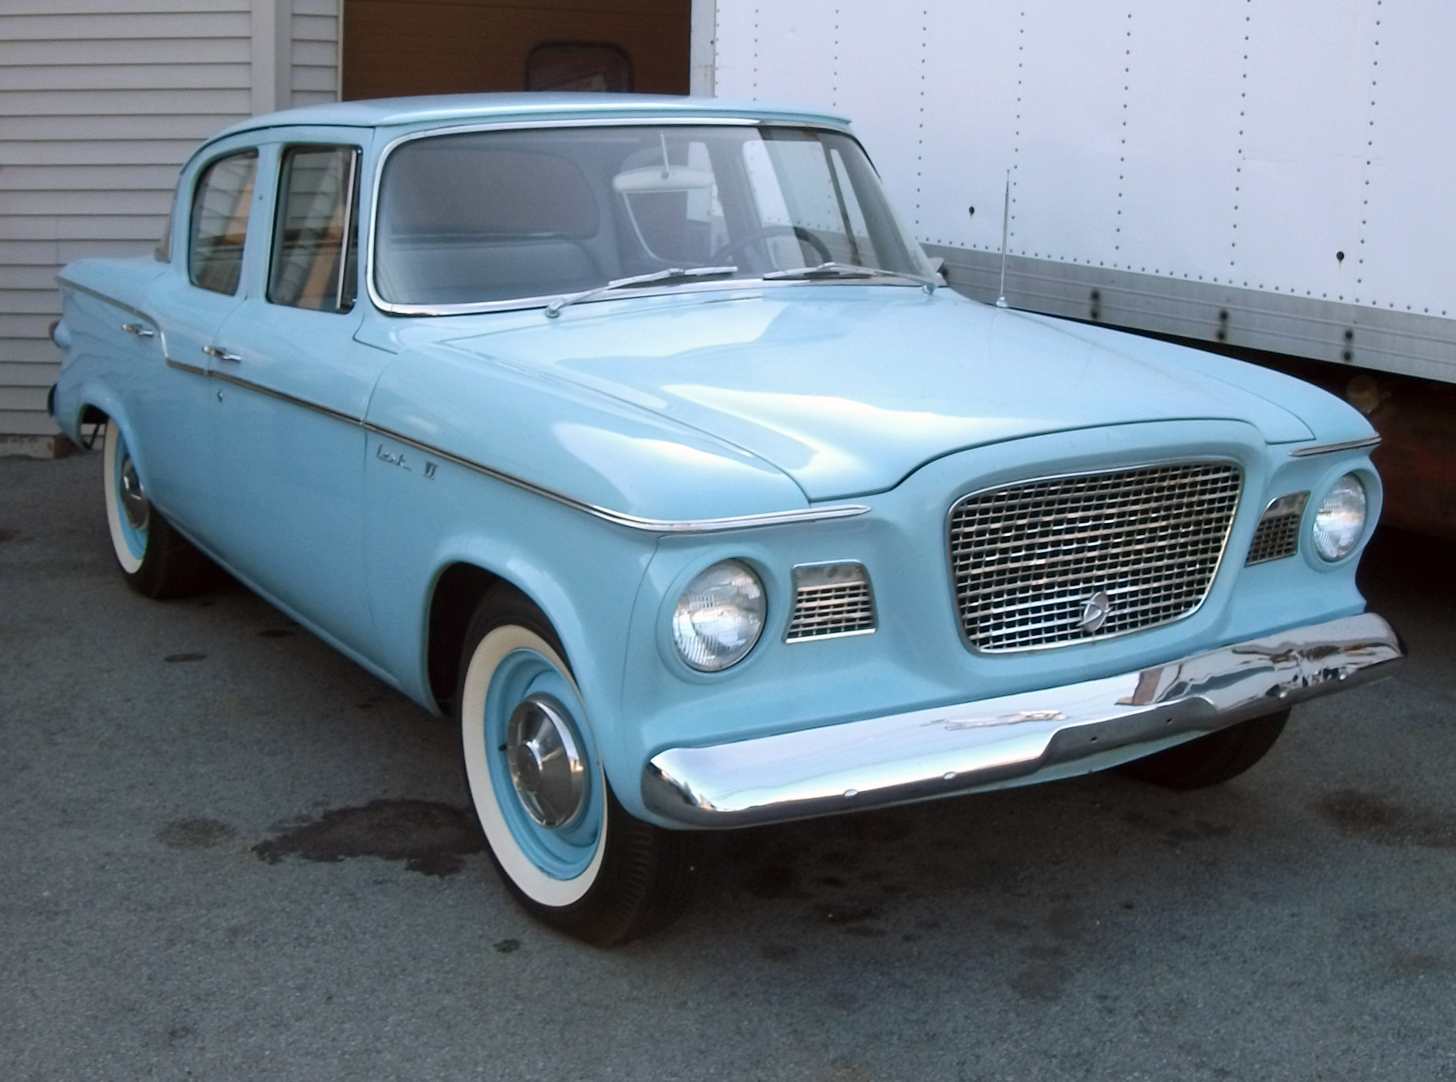 File:1960 Studebaker Lark VI powder blue.jpg - Wikimedia Commons